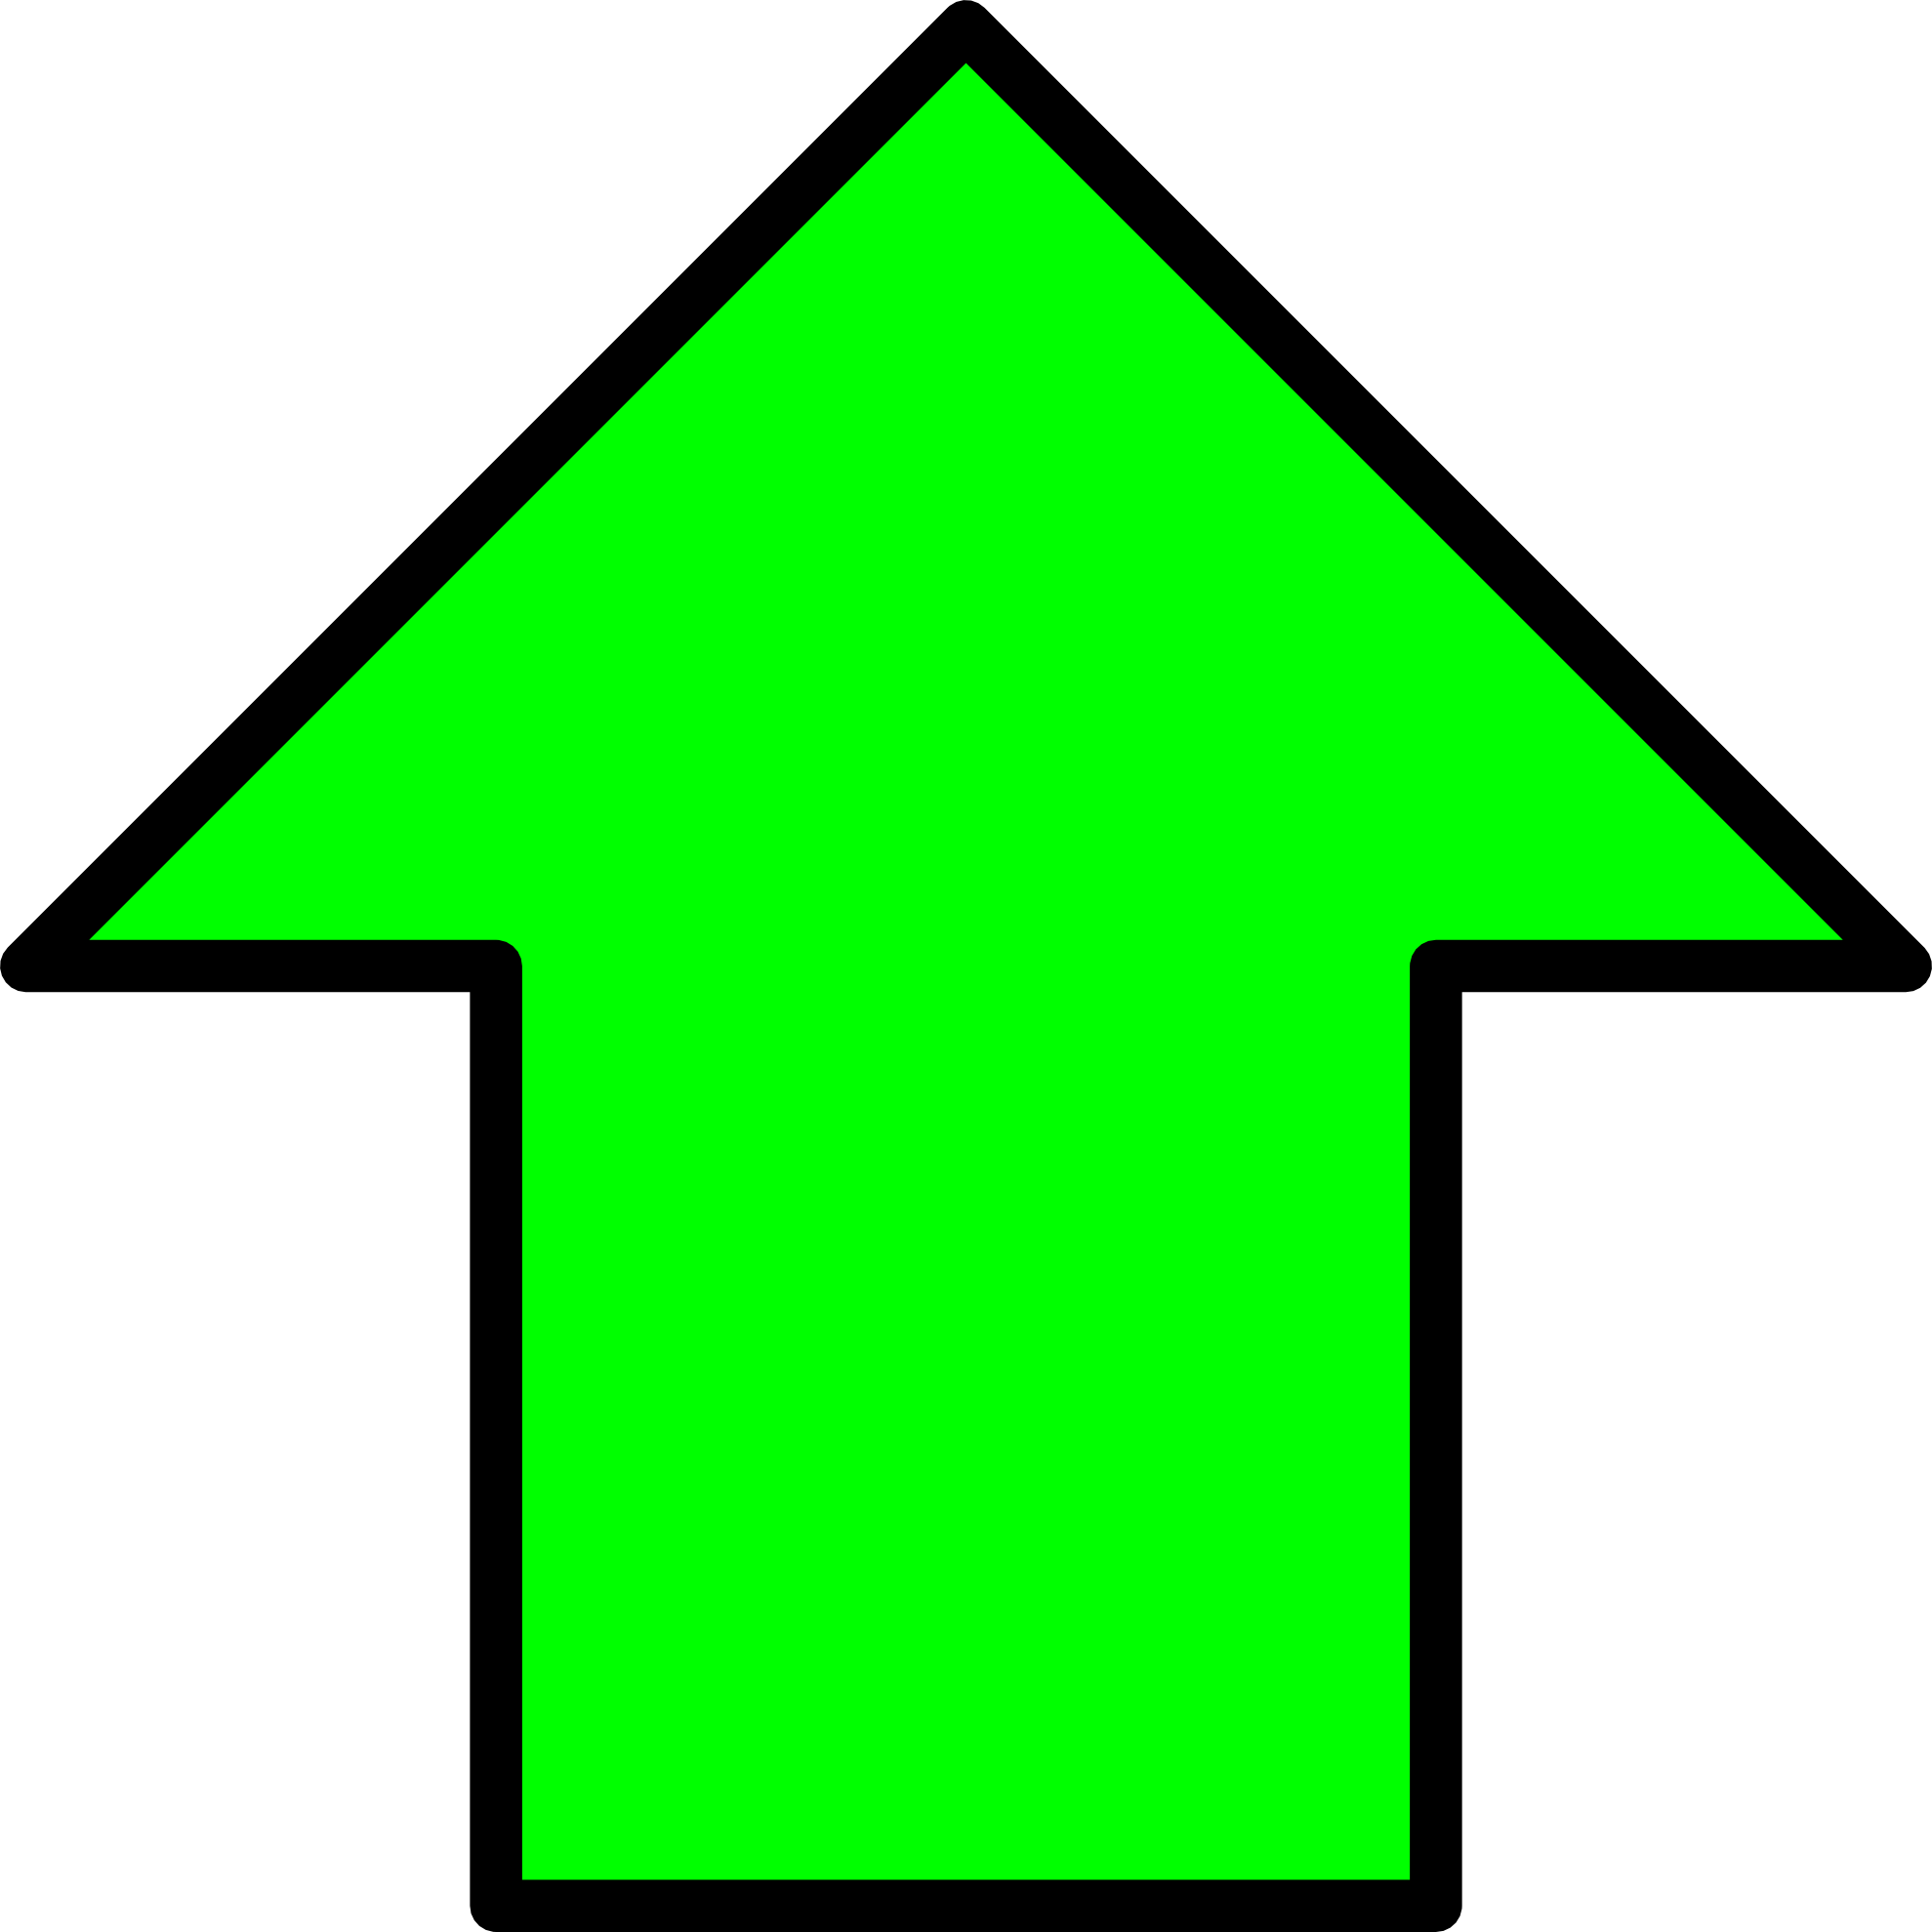 free clipart arrow pointing up - photo #25